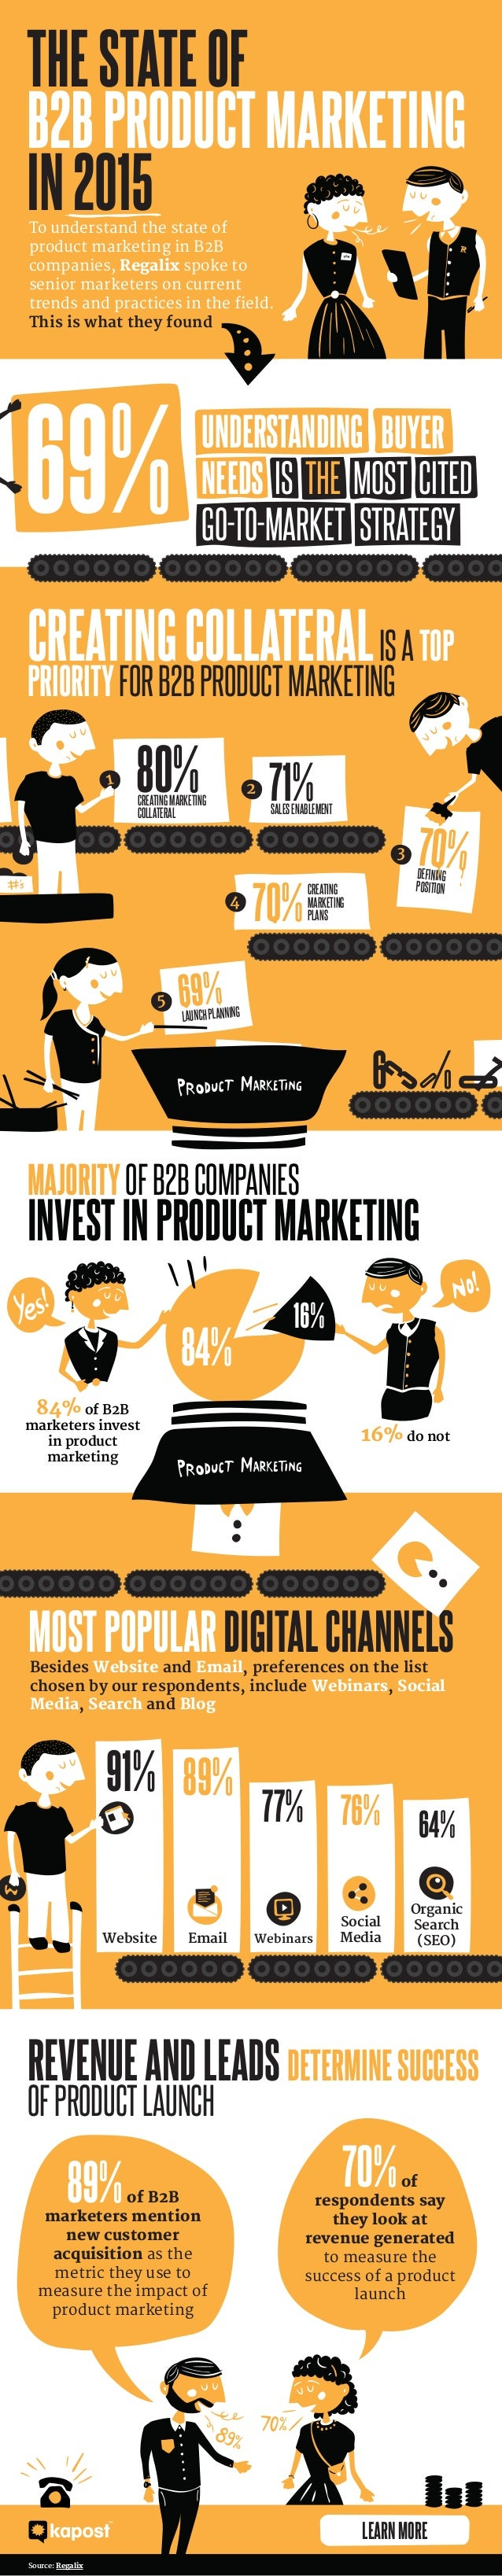 71%SALESENABLEMENT THESTATEOF B2BPRODUCTMARKETING IN2015 CREATINGCOLLATERALISATOP PRIORITYFORB2BPRODUCTMARKETING MAJORITYO...